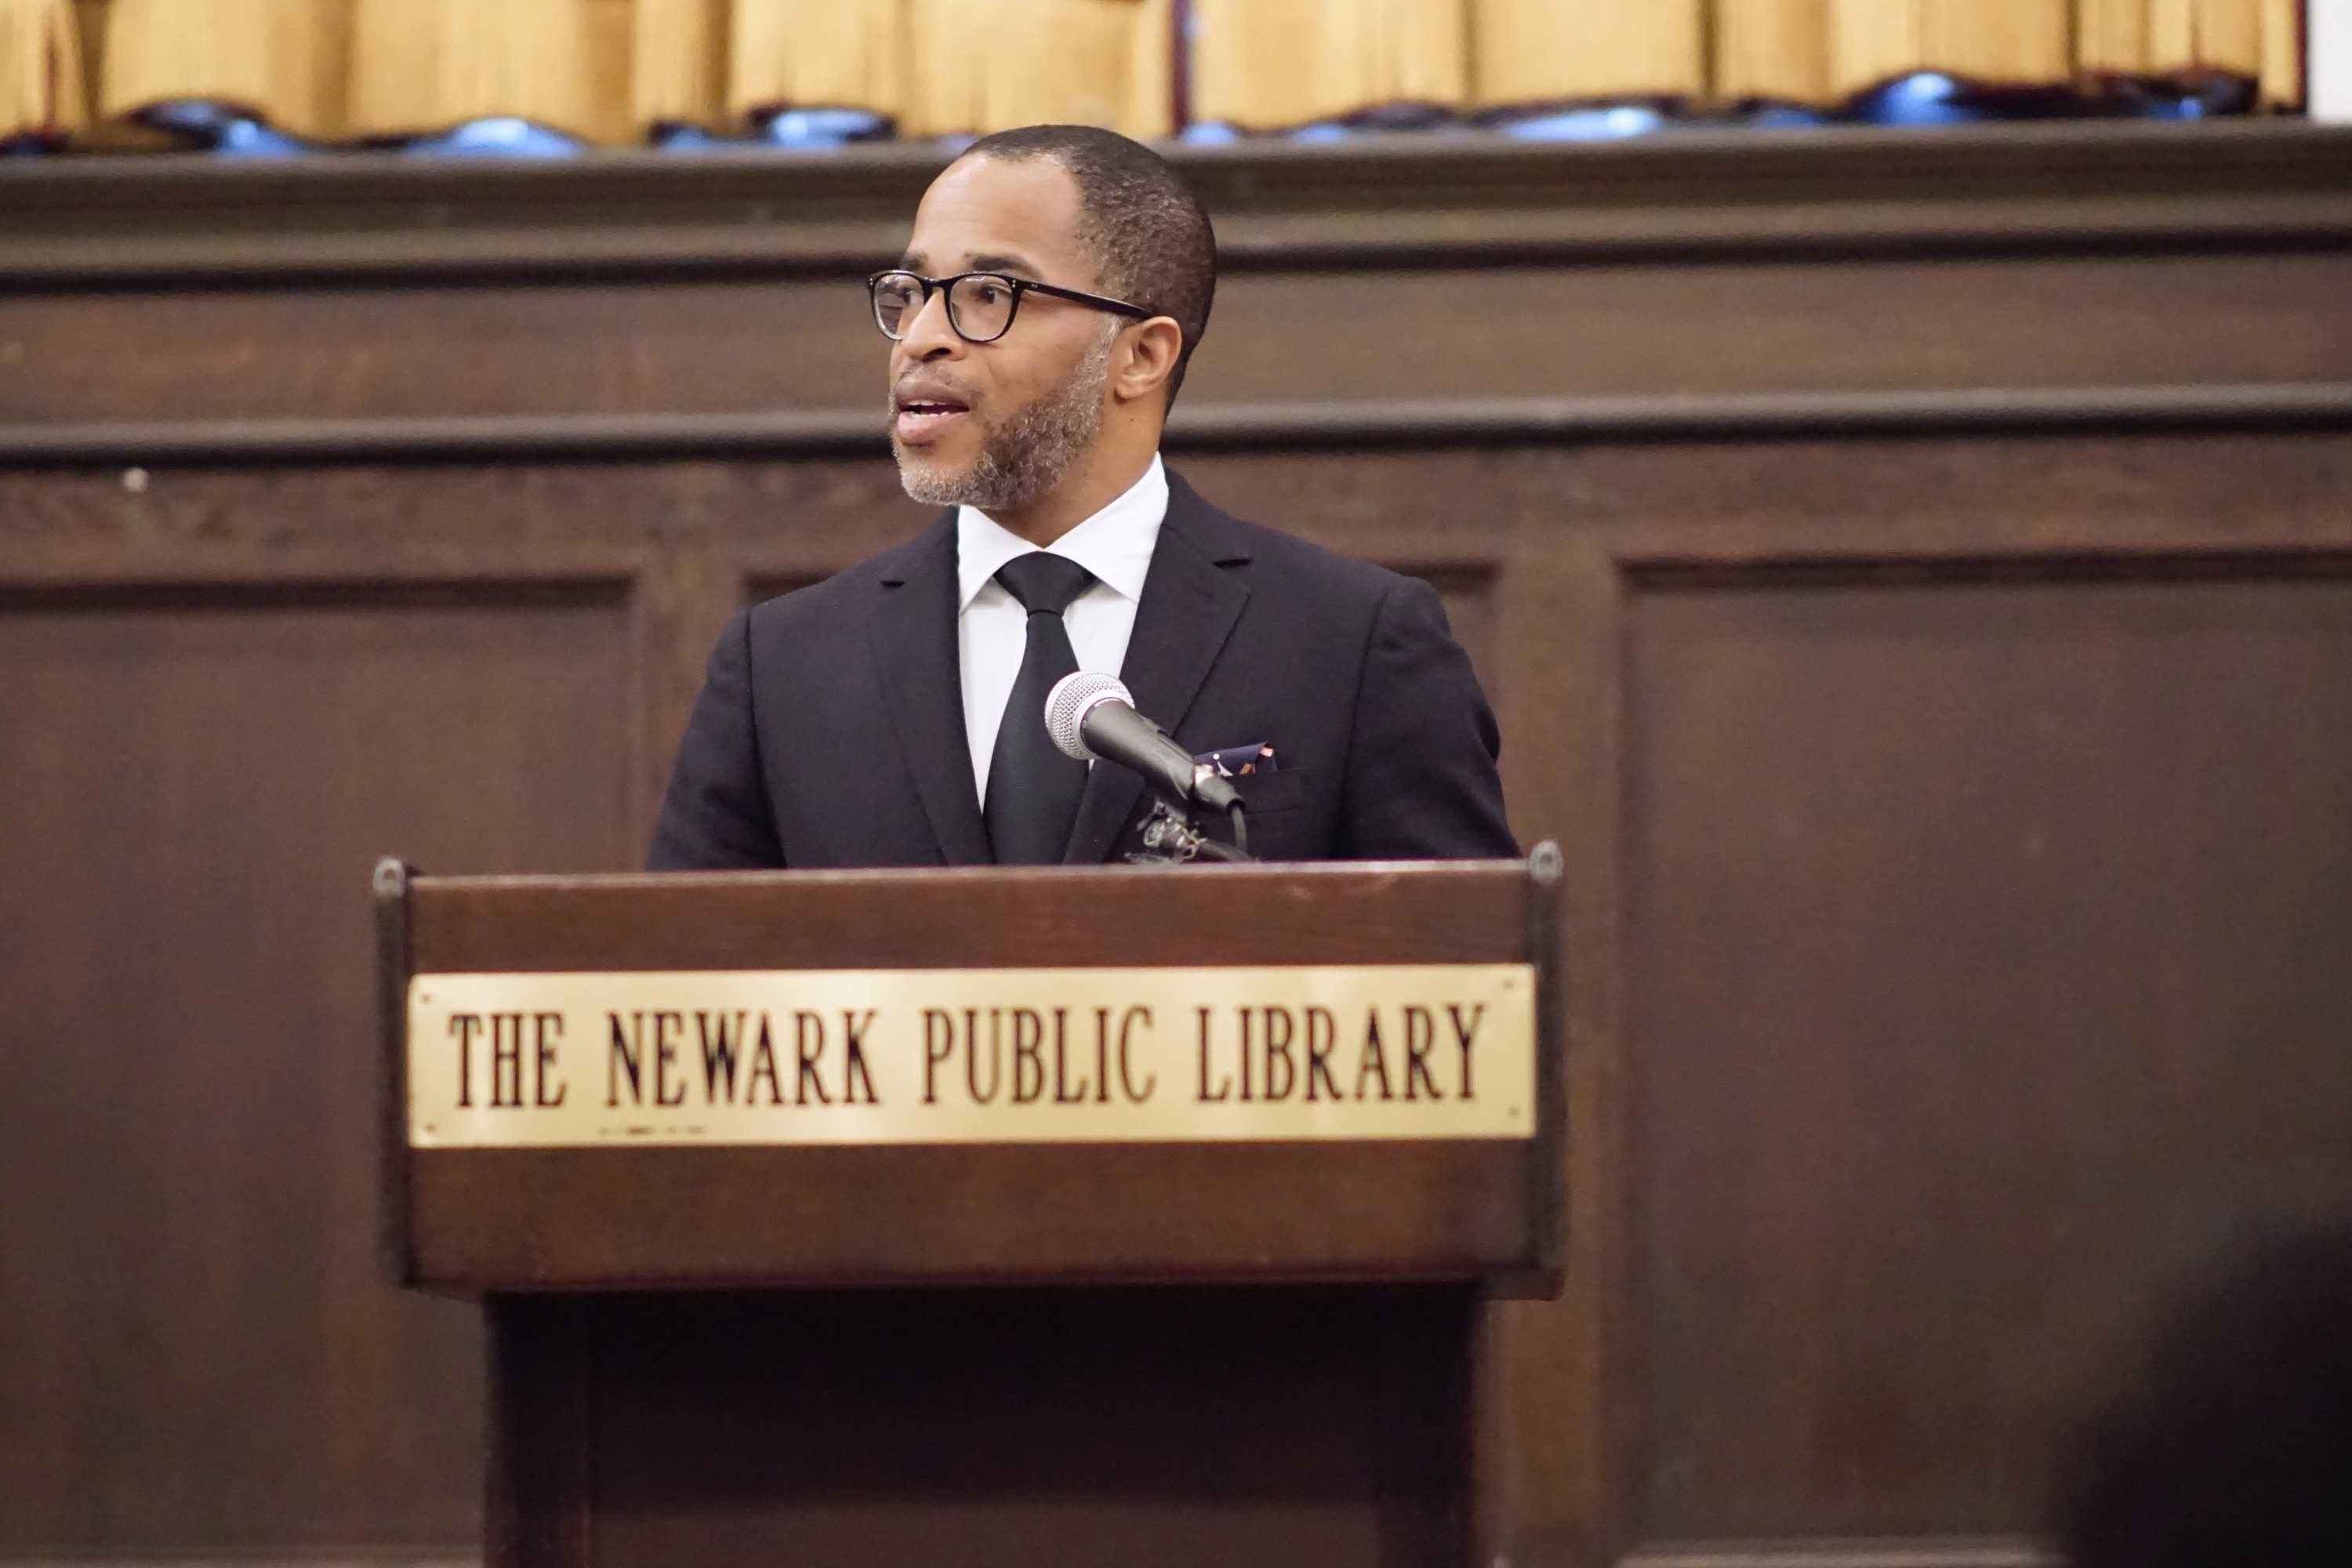 Jonathan Capehart '85 speaks to the audience of students,  community members, and patrons assembled at the Newark Public Library on Saturday, Feb. 6.